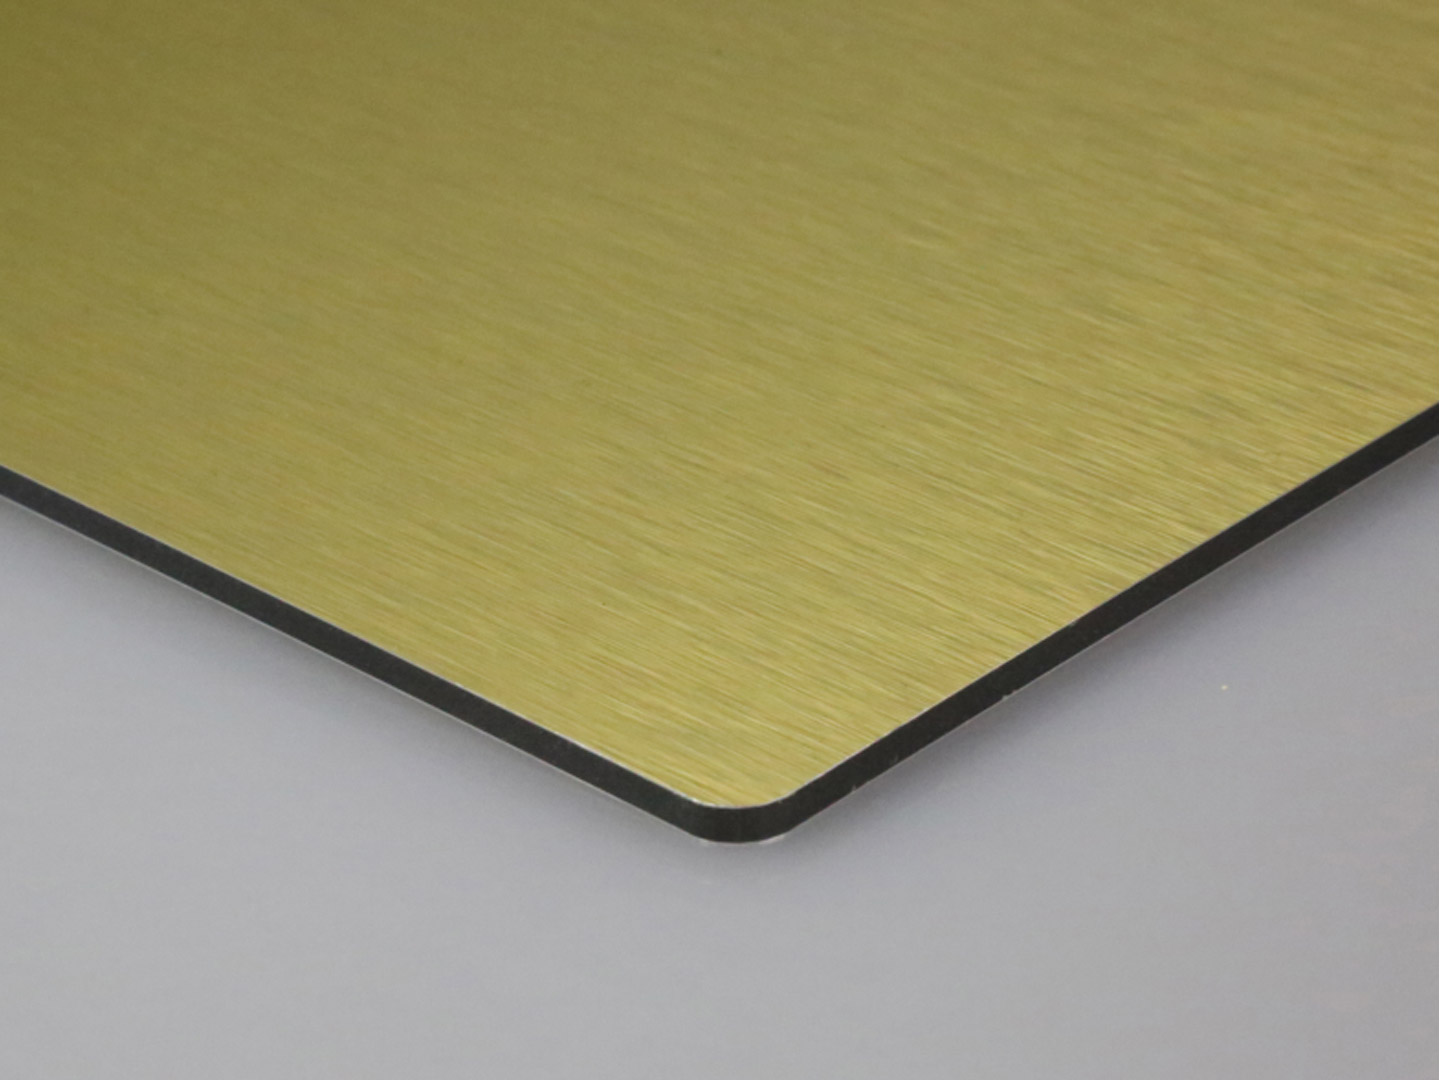 How to Solve the Problem of the Aluminum Composite Panel Fade?